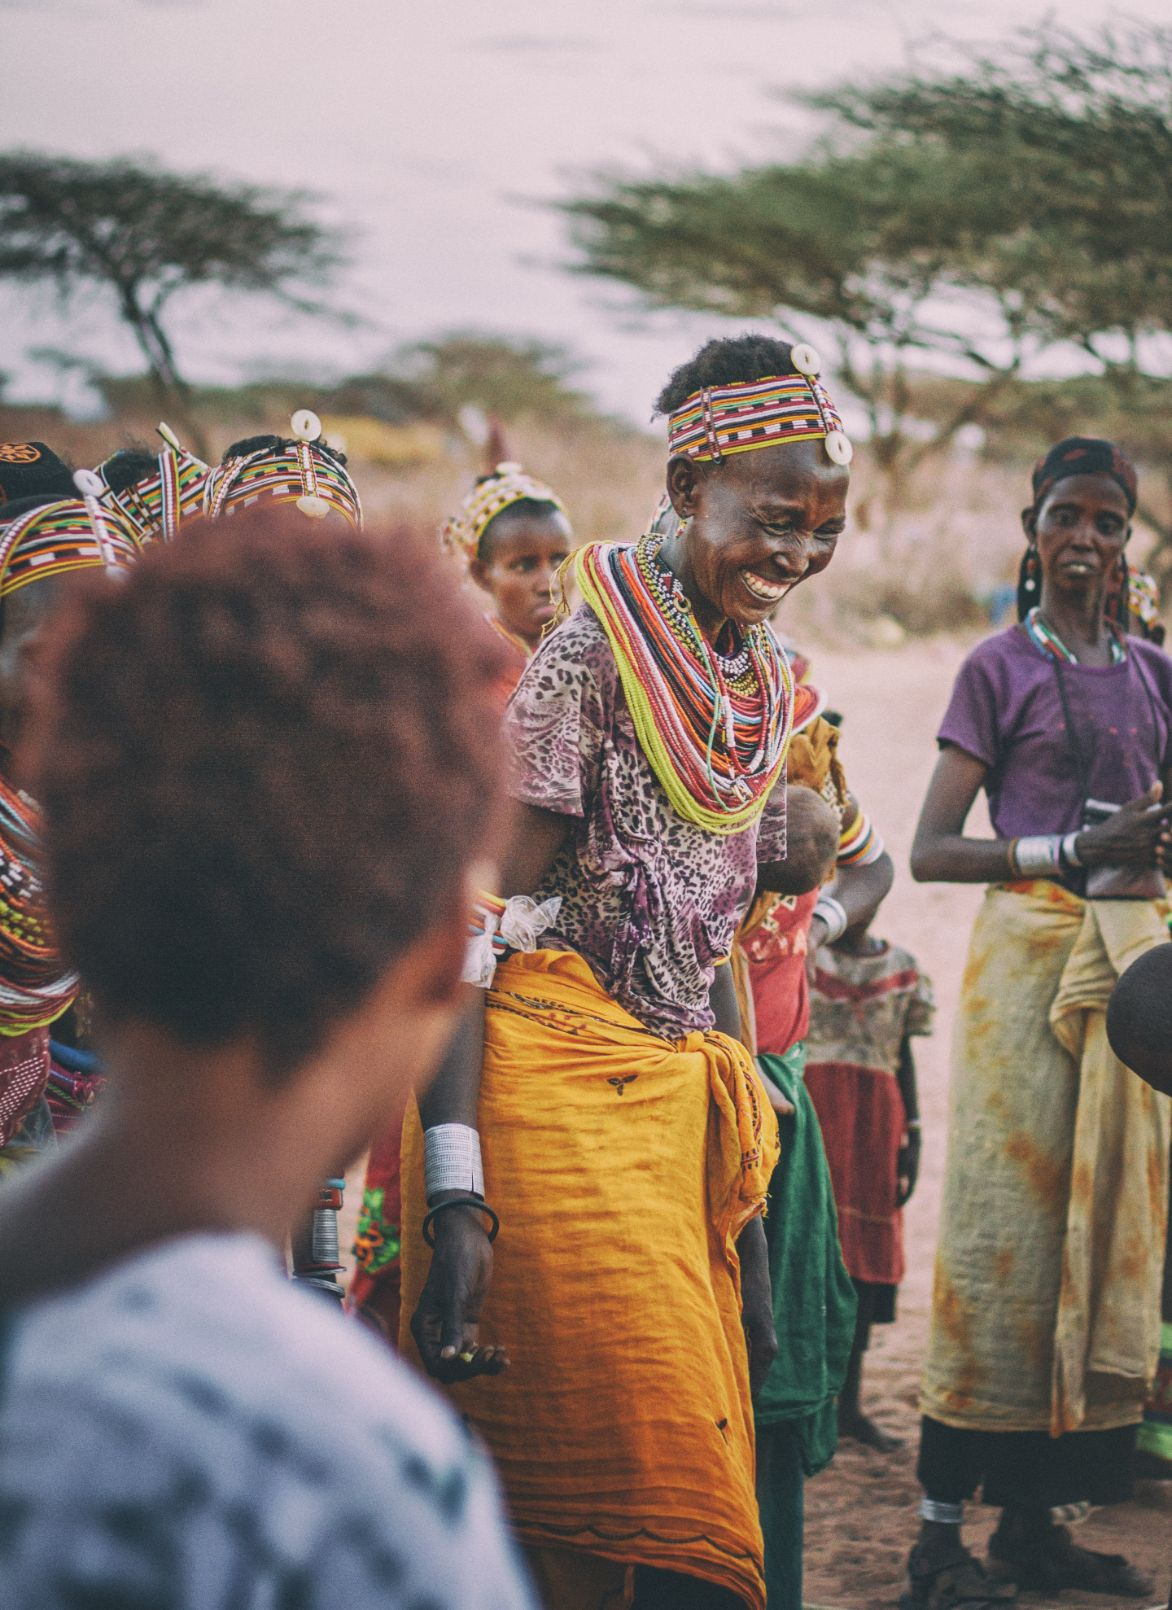 woman smiling and laughing in traditional dress in Africa